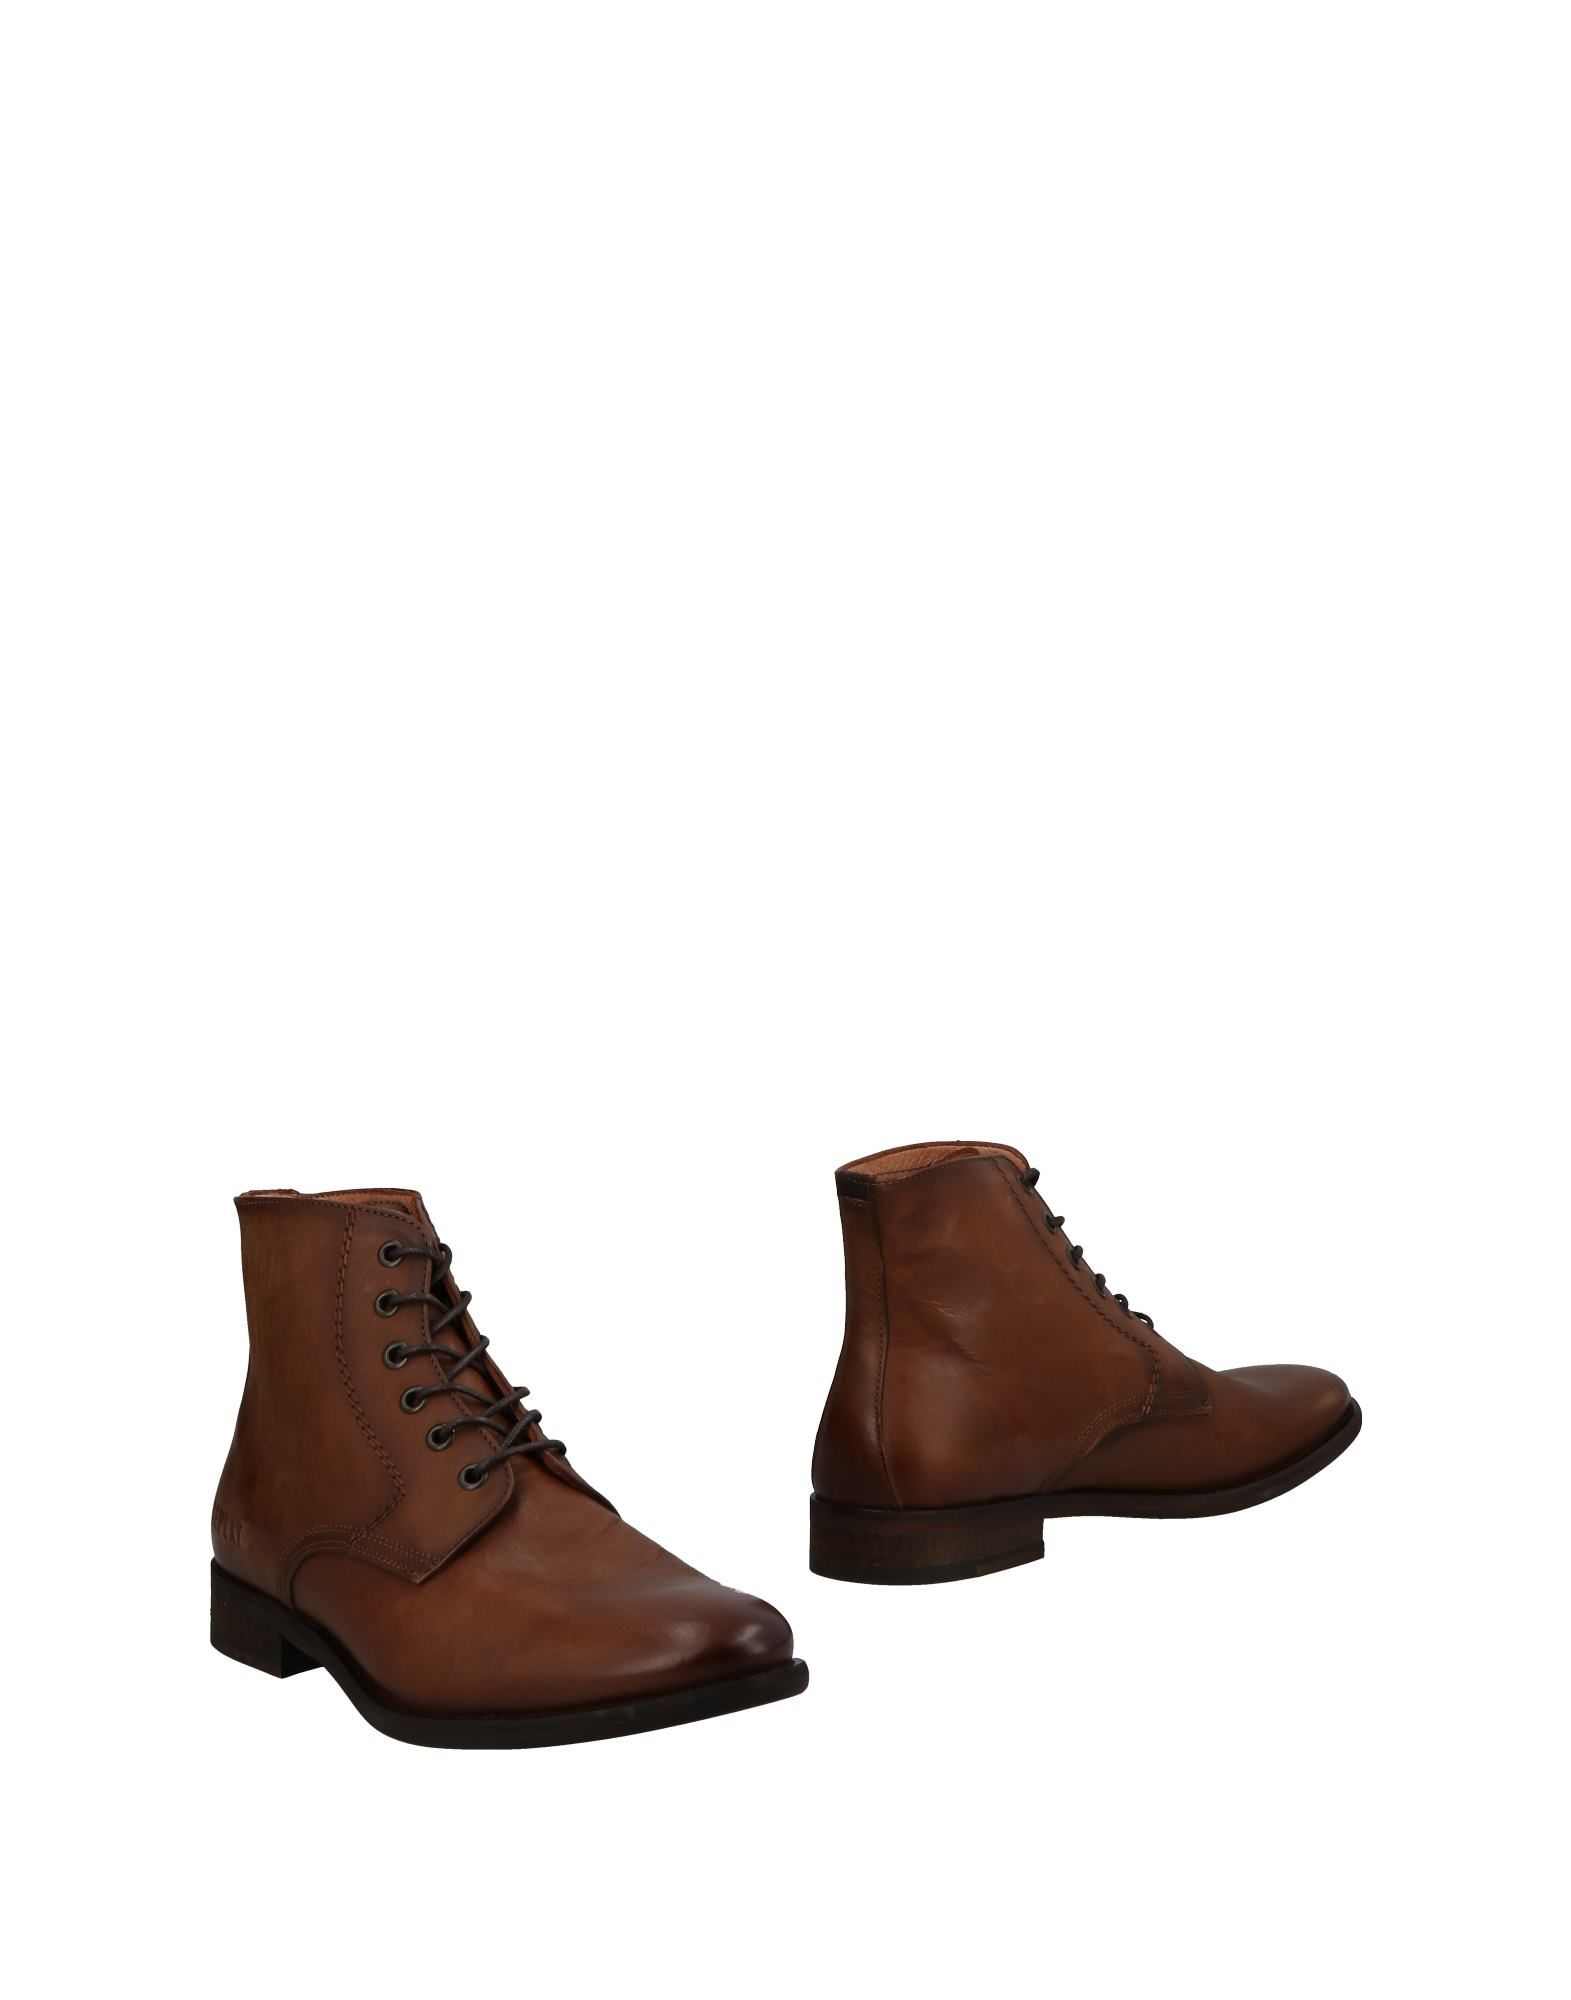 REPLAY Boots in Brown